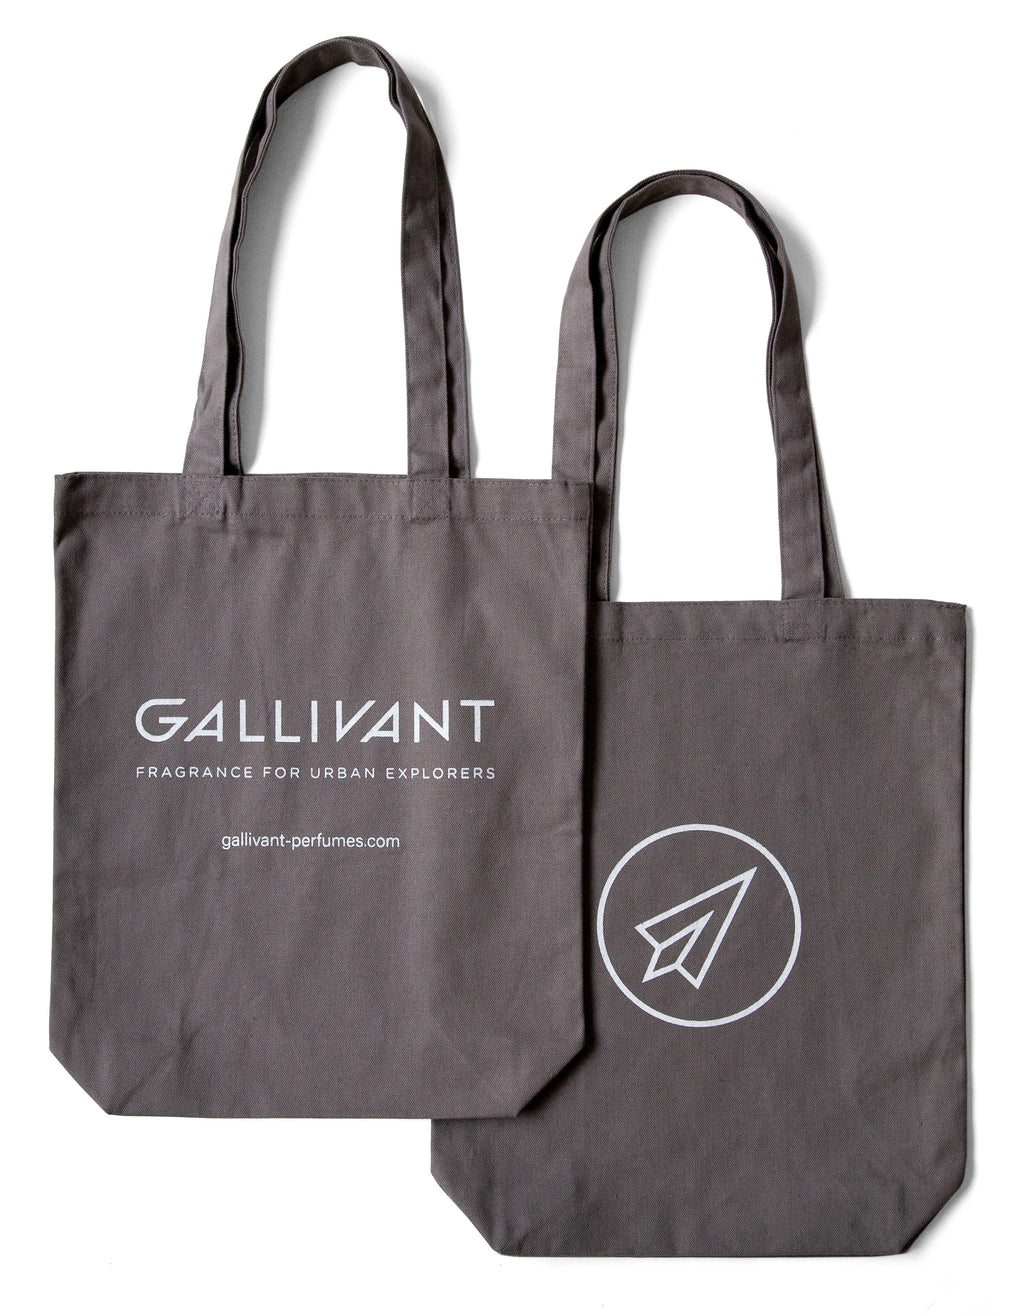 GALLIVANT Urban Explorers tote bag